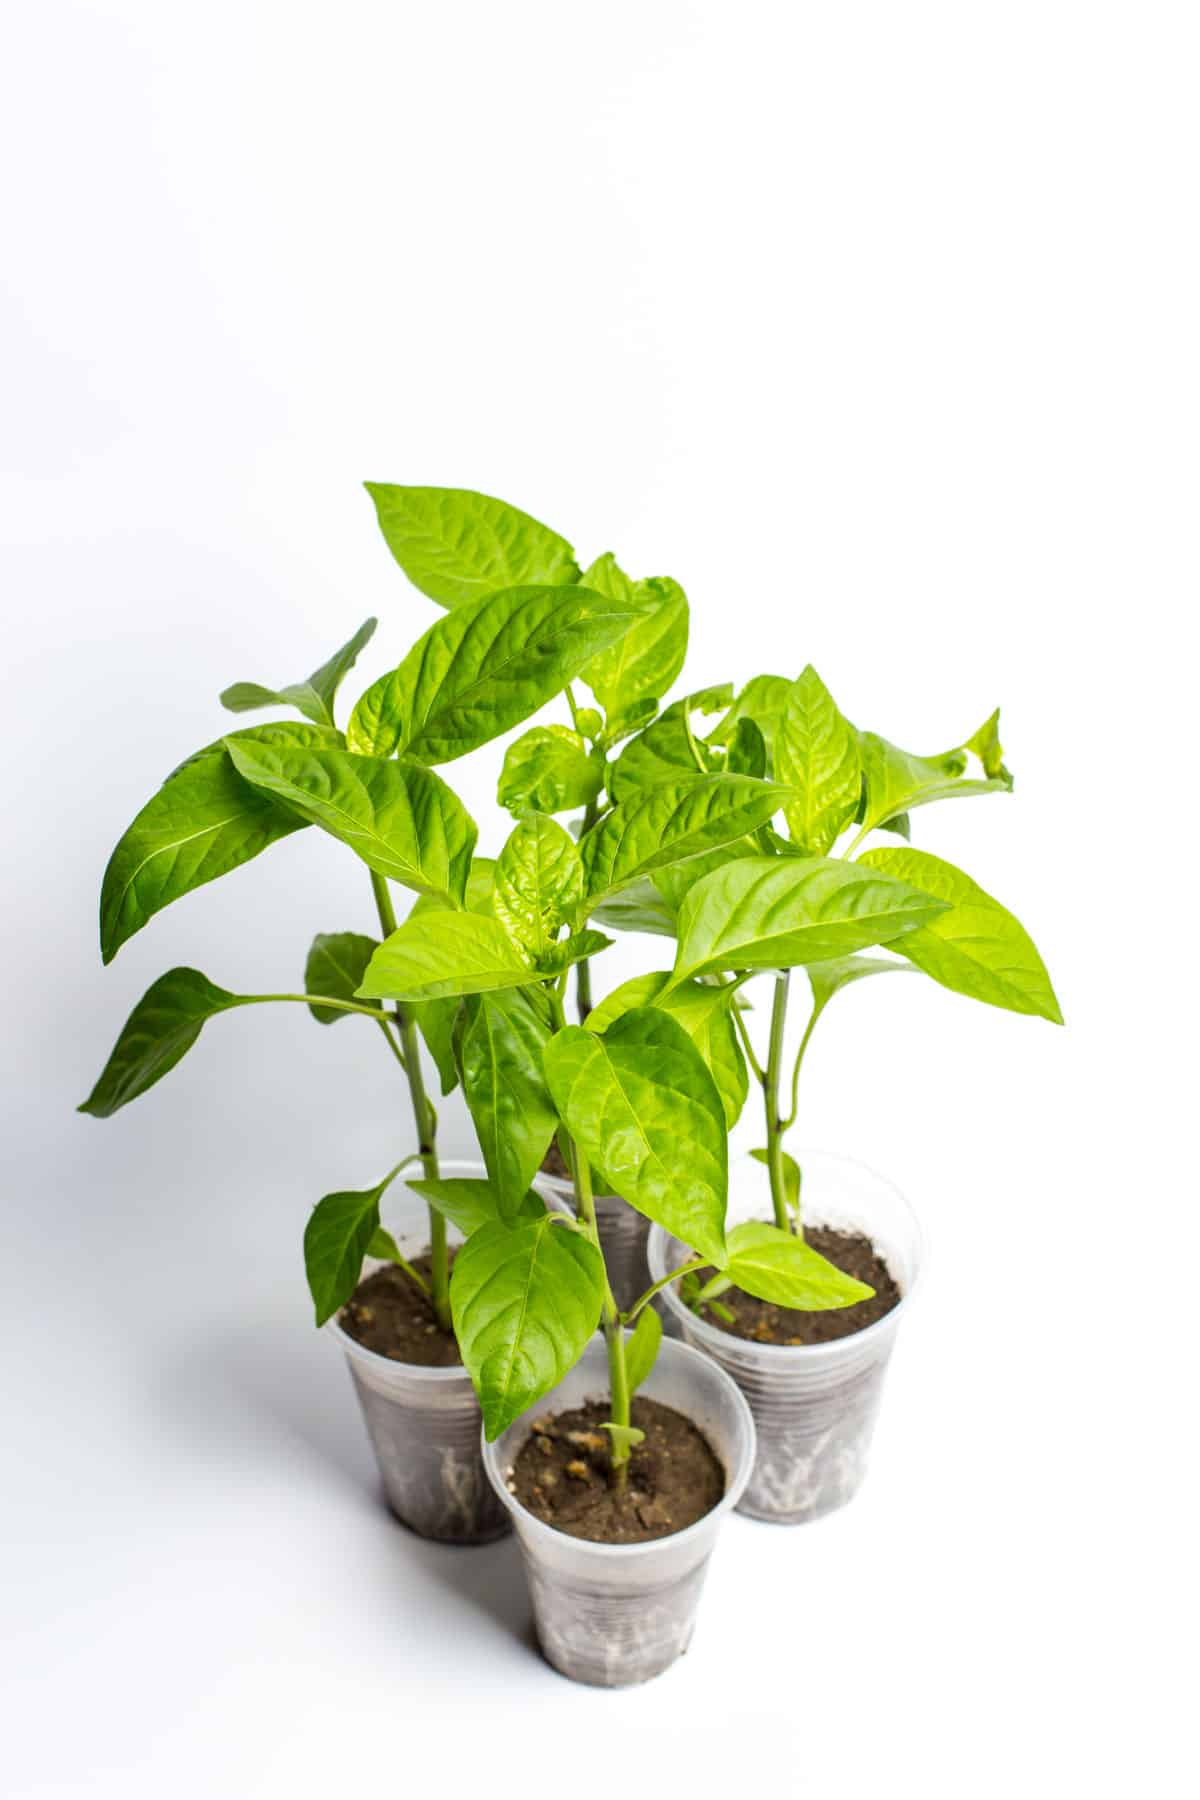 photo of 3 young basil seedlings in plastic cups